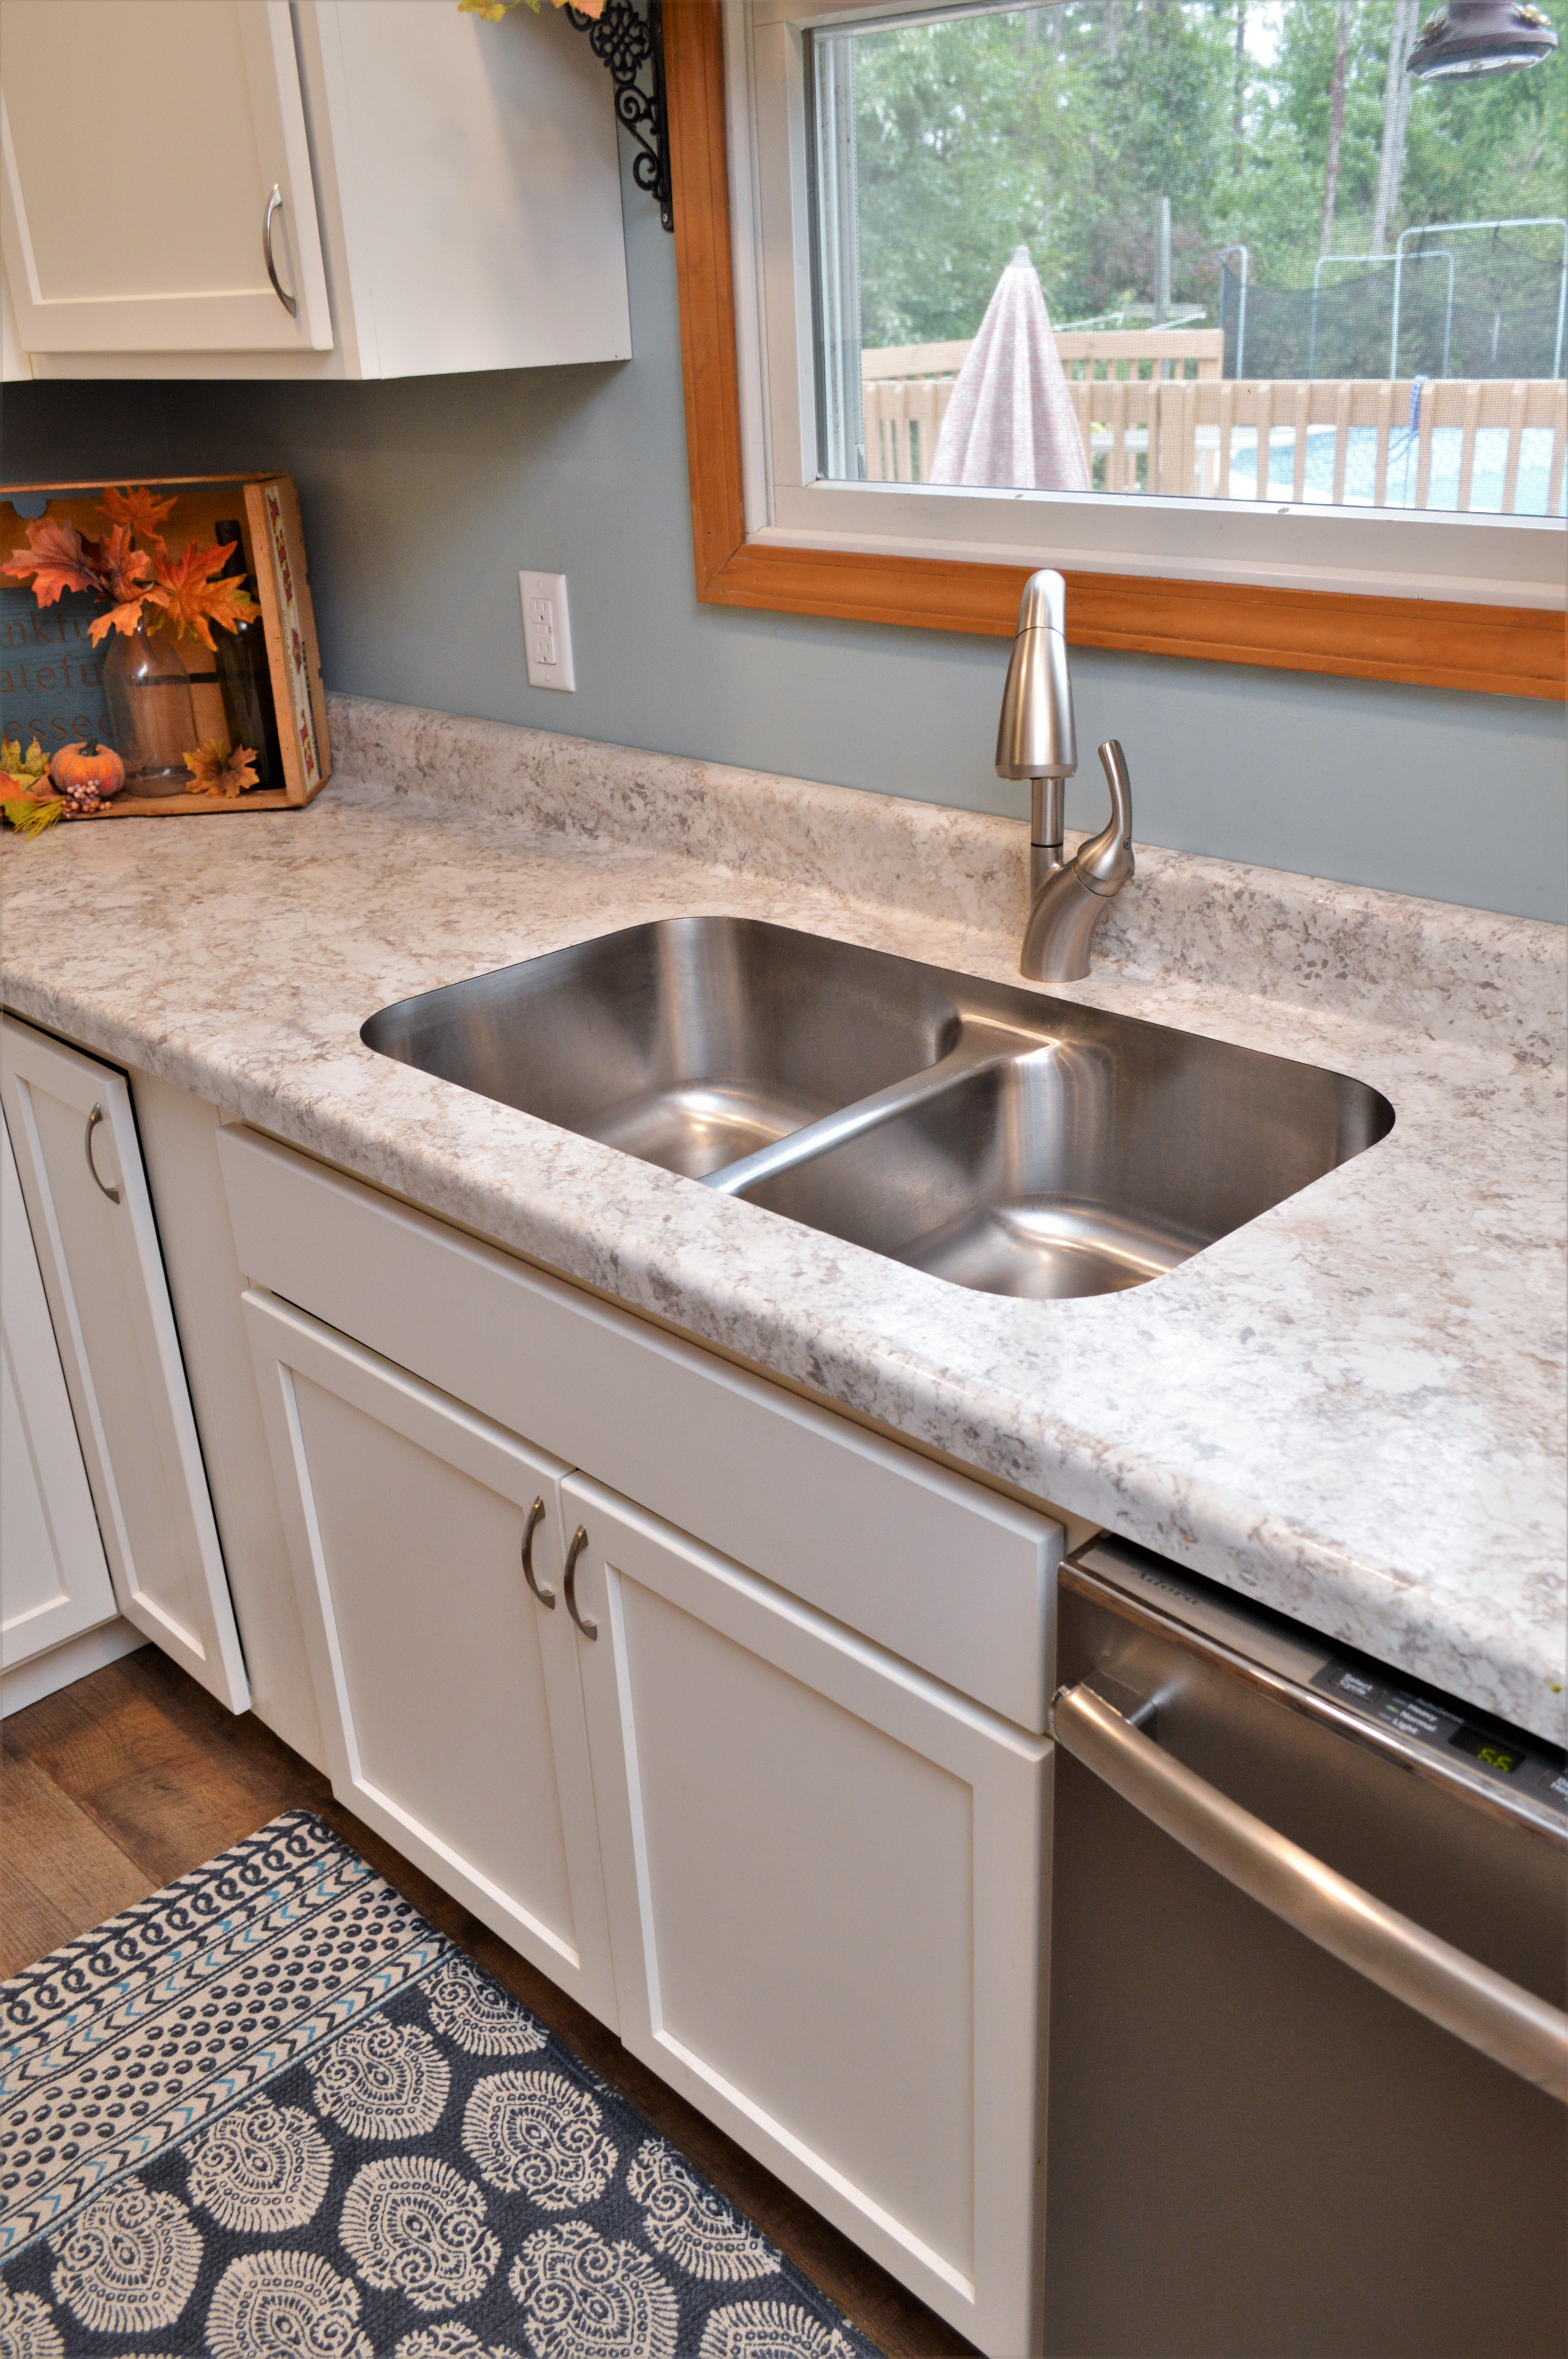 Bailey's Cabinets, Karran Stainless Steel Sink, Equal Bowl